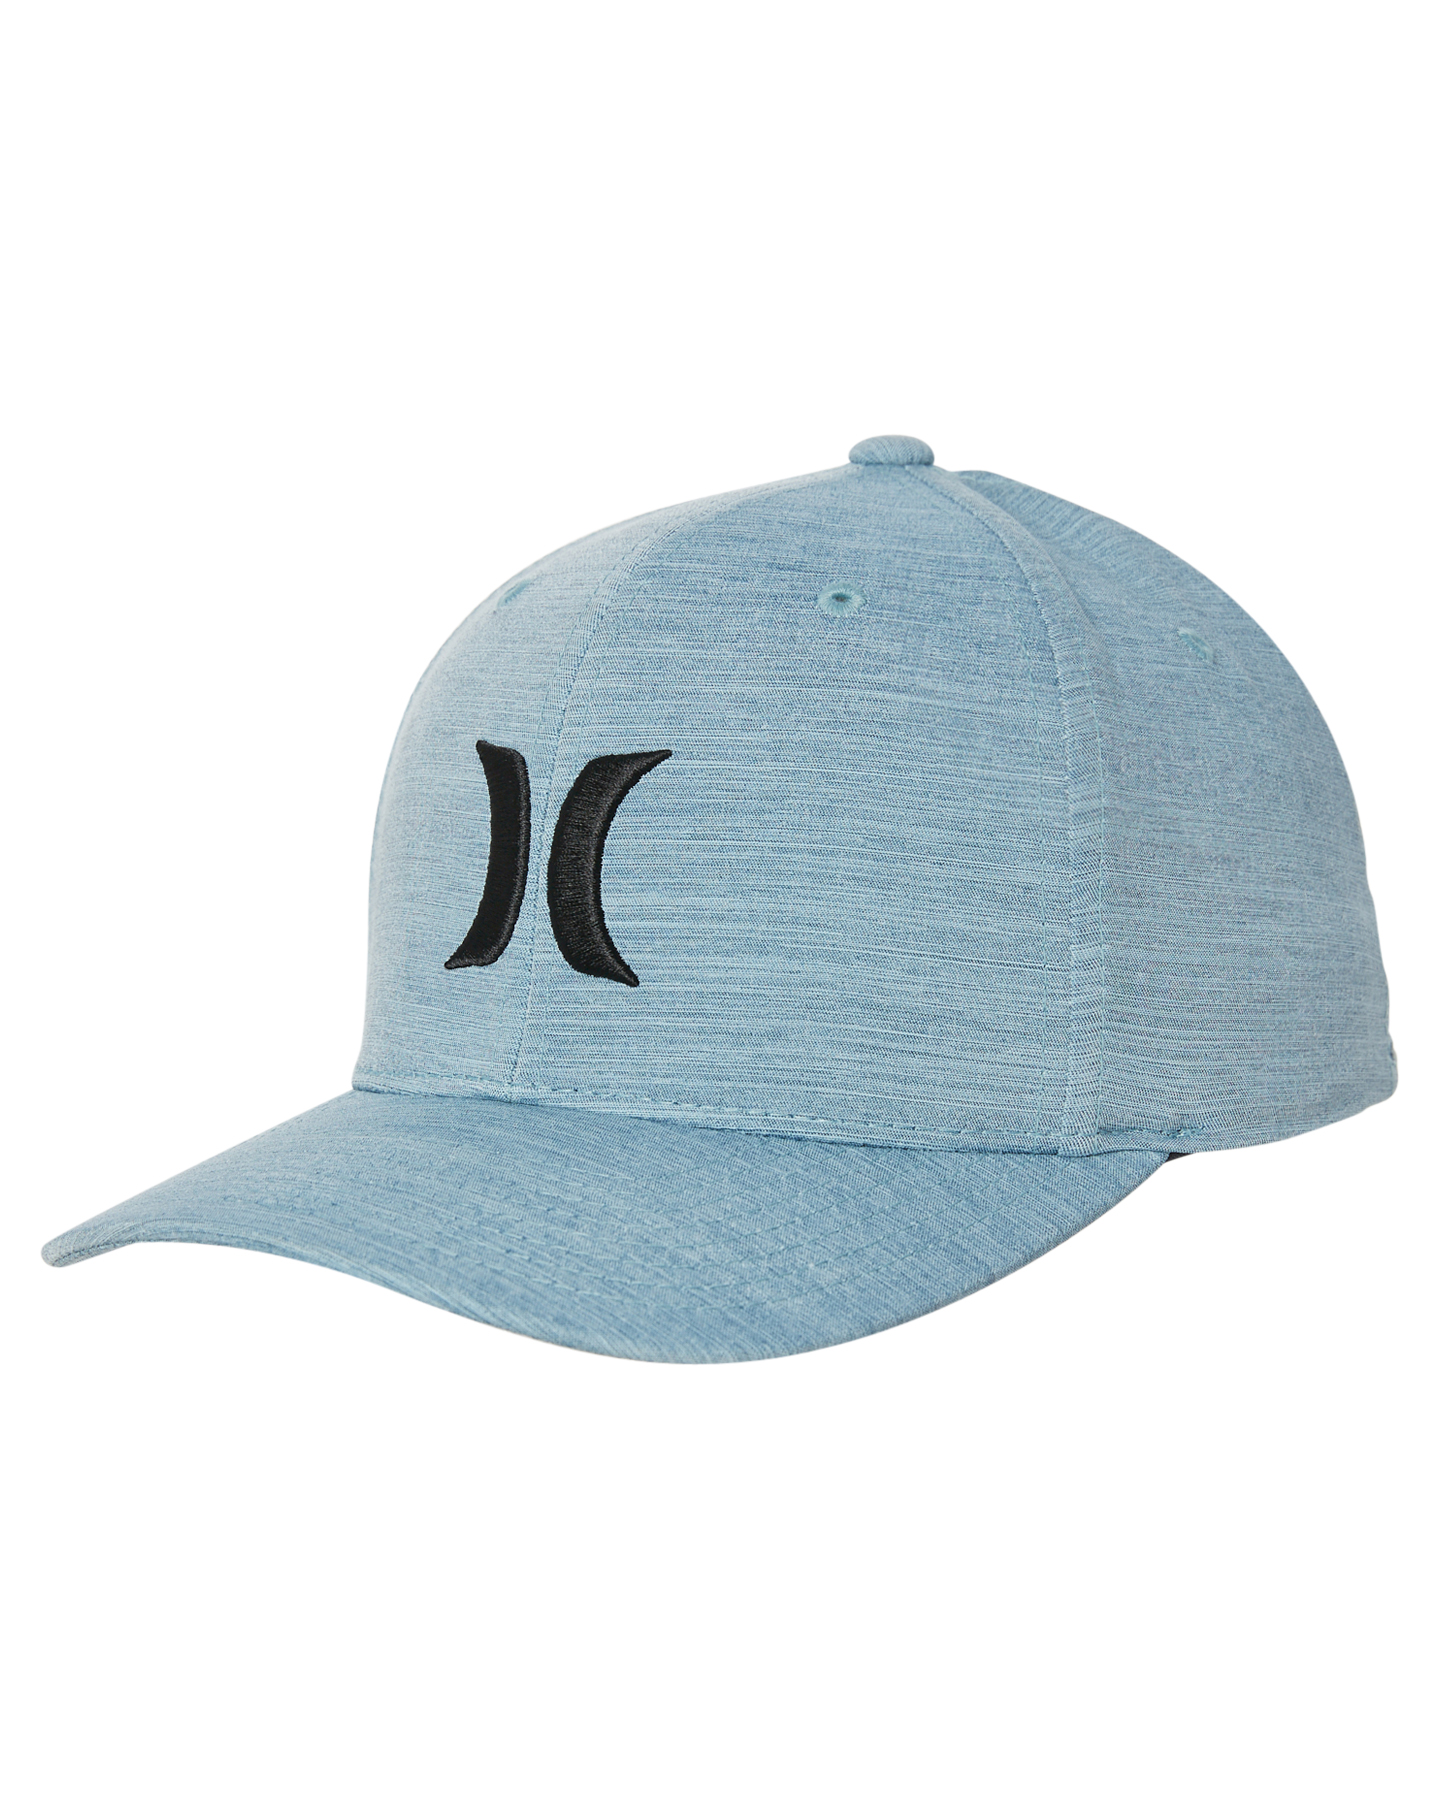 New Hurley Men s Dri Fit Cutback Fitted Cap Fitted Spandex Grey  9c1e2708ff94